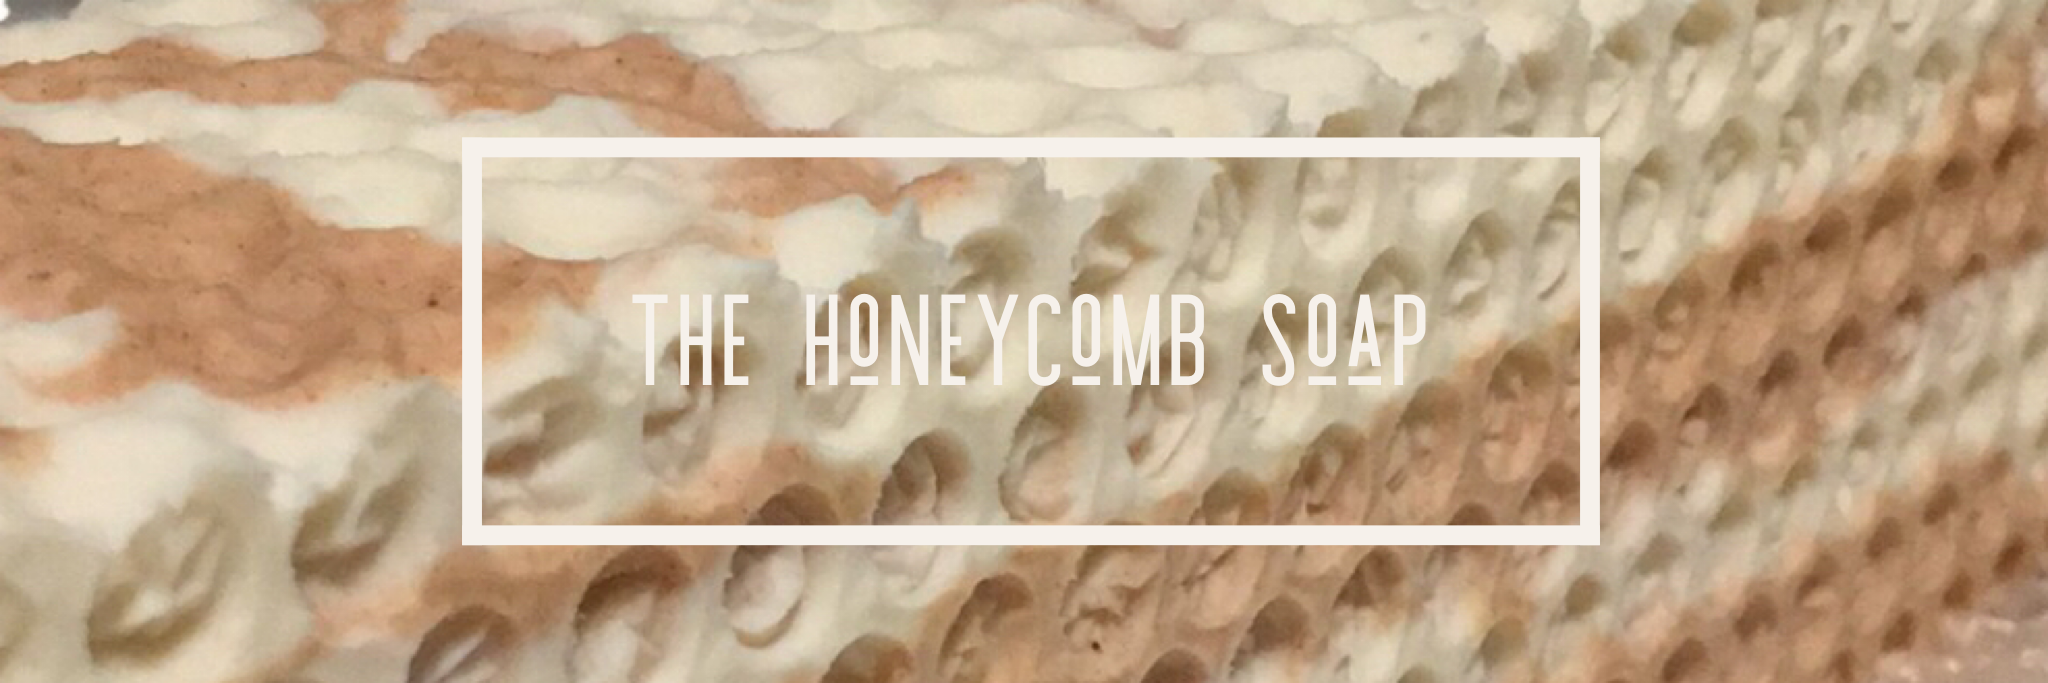 The Honeycomb soap tutorial twitter banner wordswag.PNG